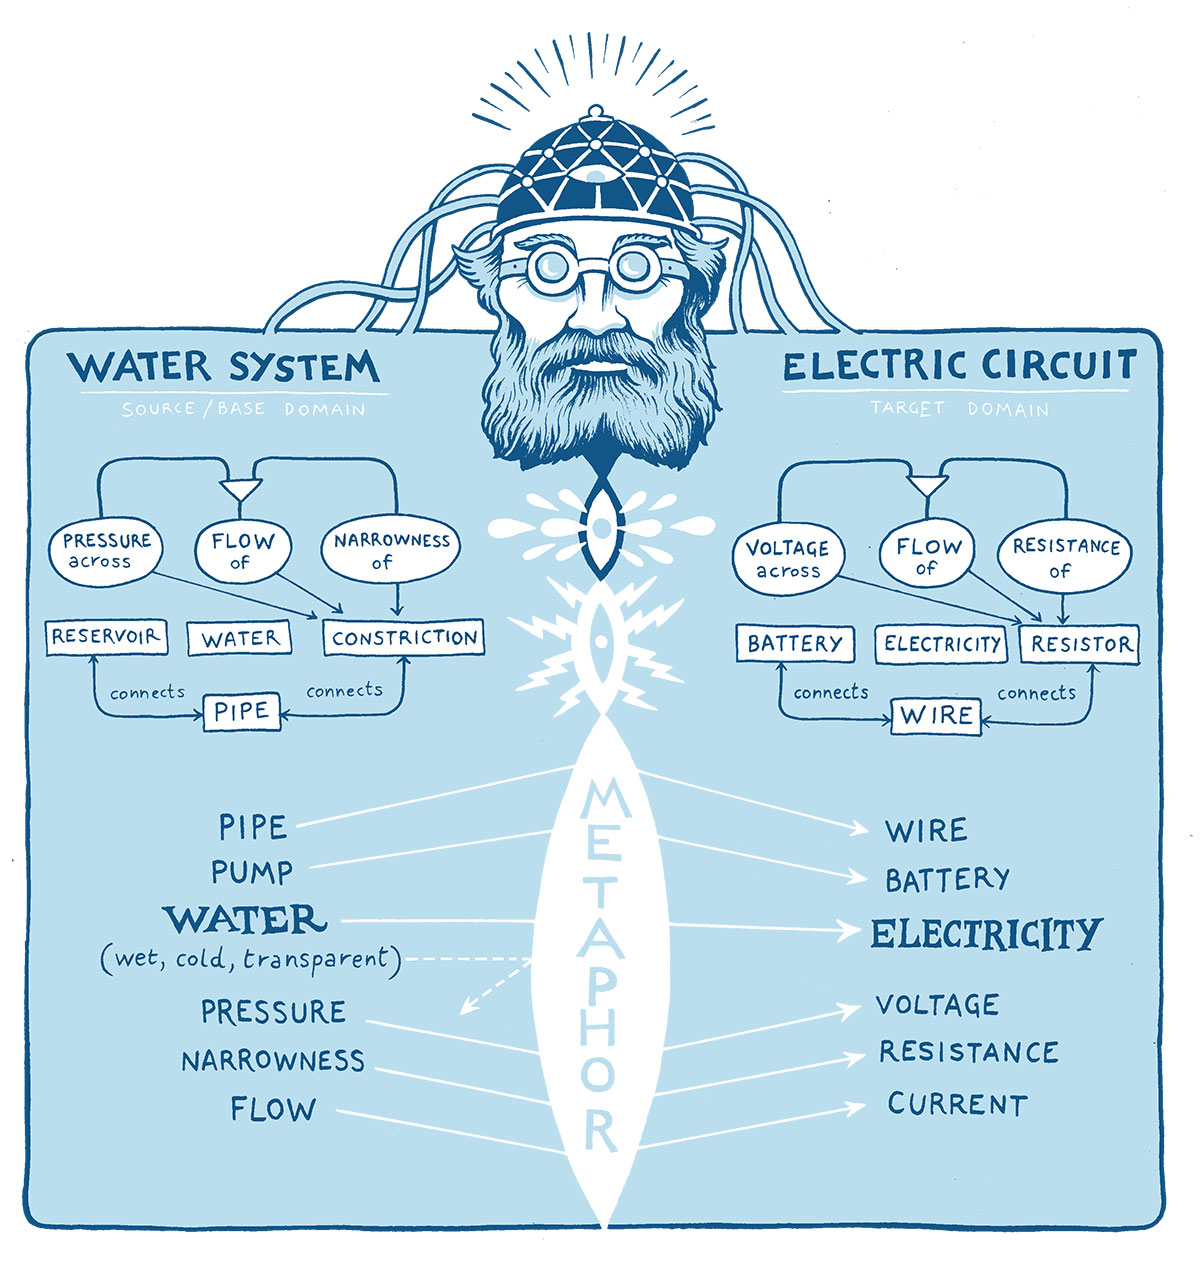 Illustration comparing hot water to electricity flow